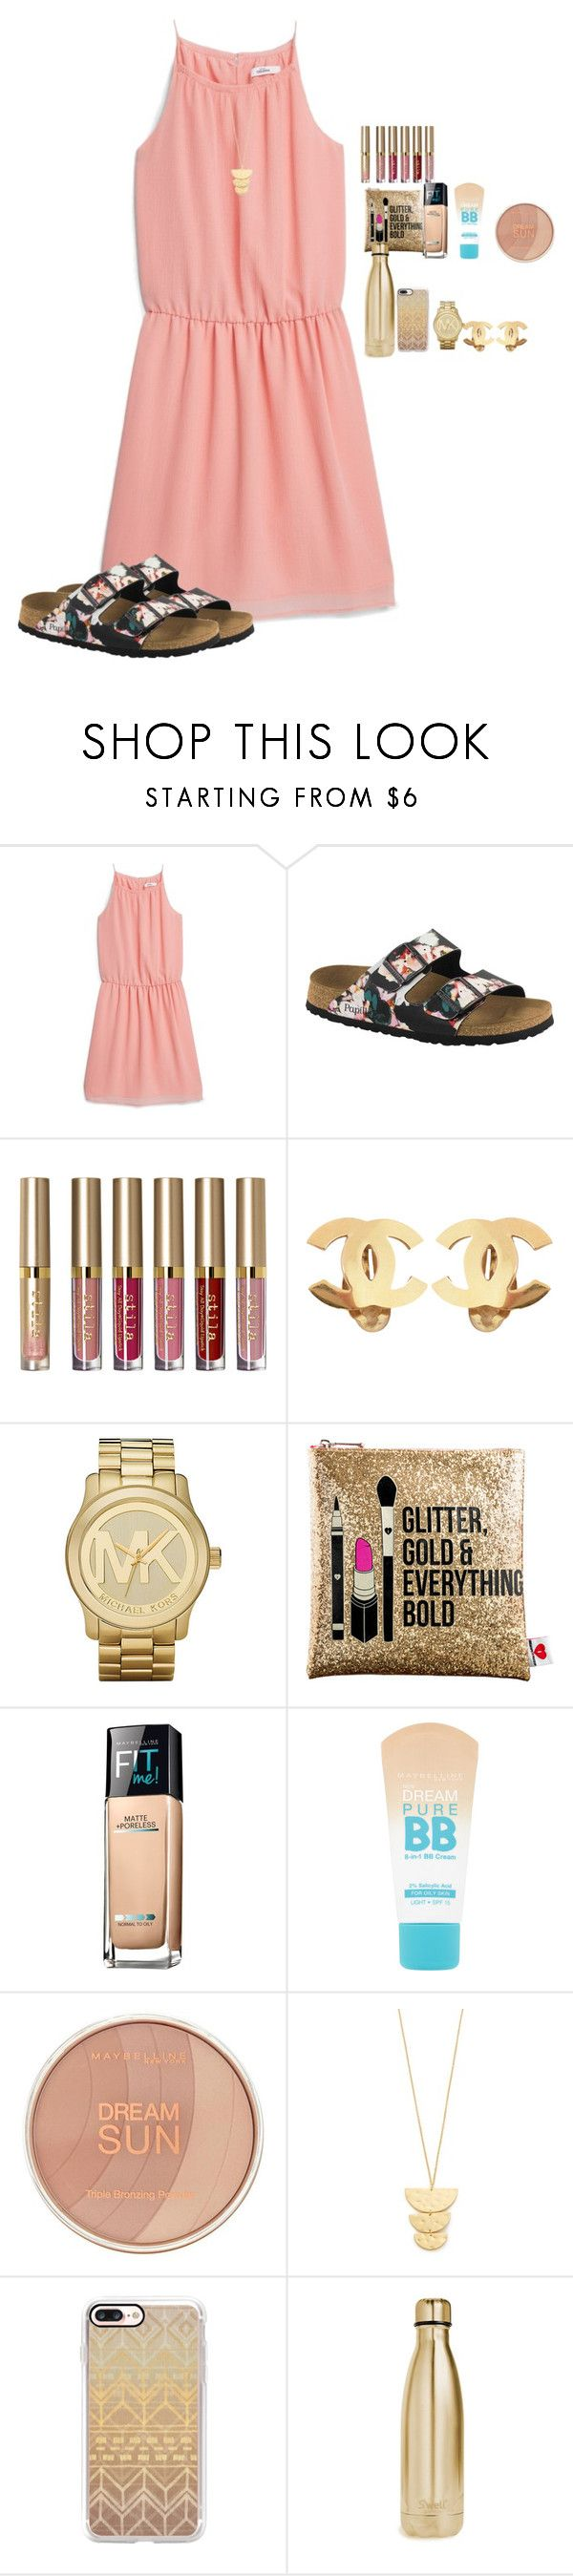 """""""I fell in love with these Birkenstocks!!!!!"""" by amaya-leigh ❤ liked on Polyvore featuring MANGO, Birkenstock, Stila, Chanel, Michael Kors, Sephora Collection, Maybelline, Gorjana, Casetify and S'well"""